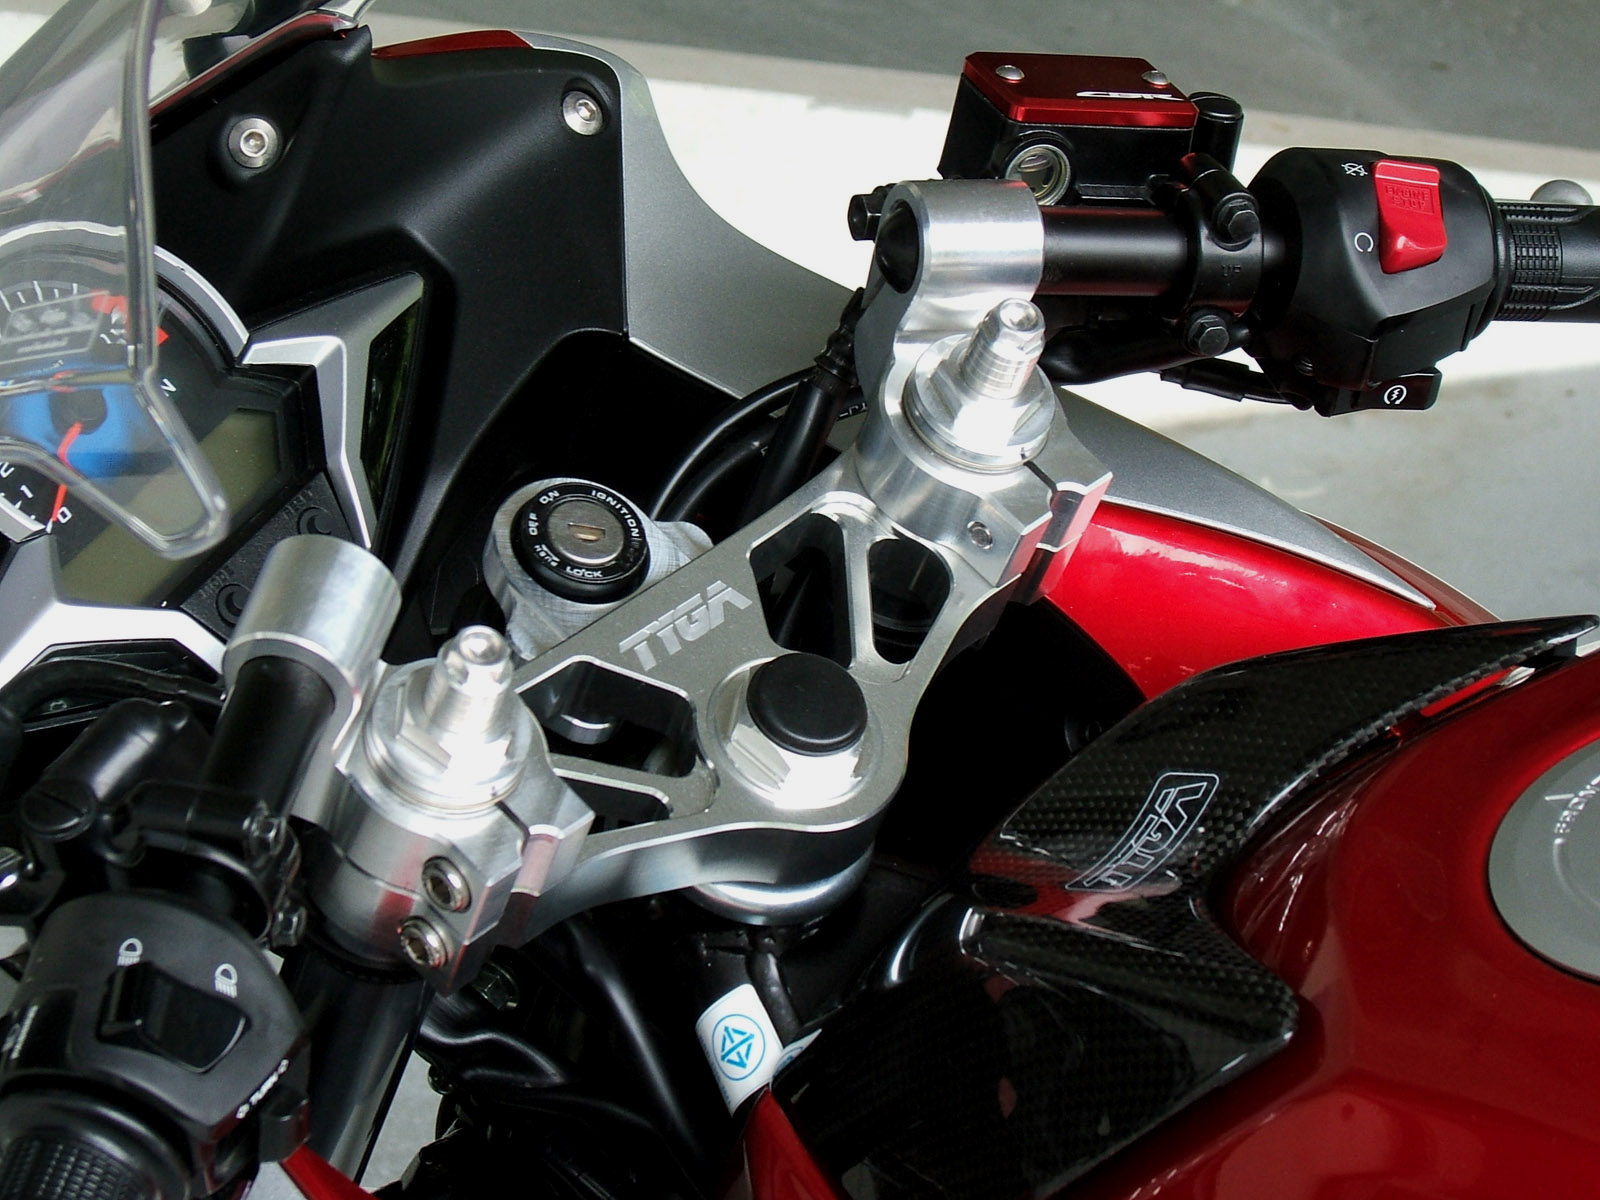 2012 Honda Cbr250ra Wiring Diagram 2011 Tyga Cbr250r Performance Some Keen Eyed Visitors To This Page May Have Noticed That The End Of Fork Caps Are Different Ones In Publicity Shots